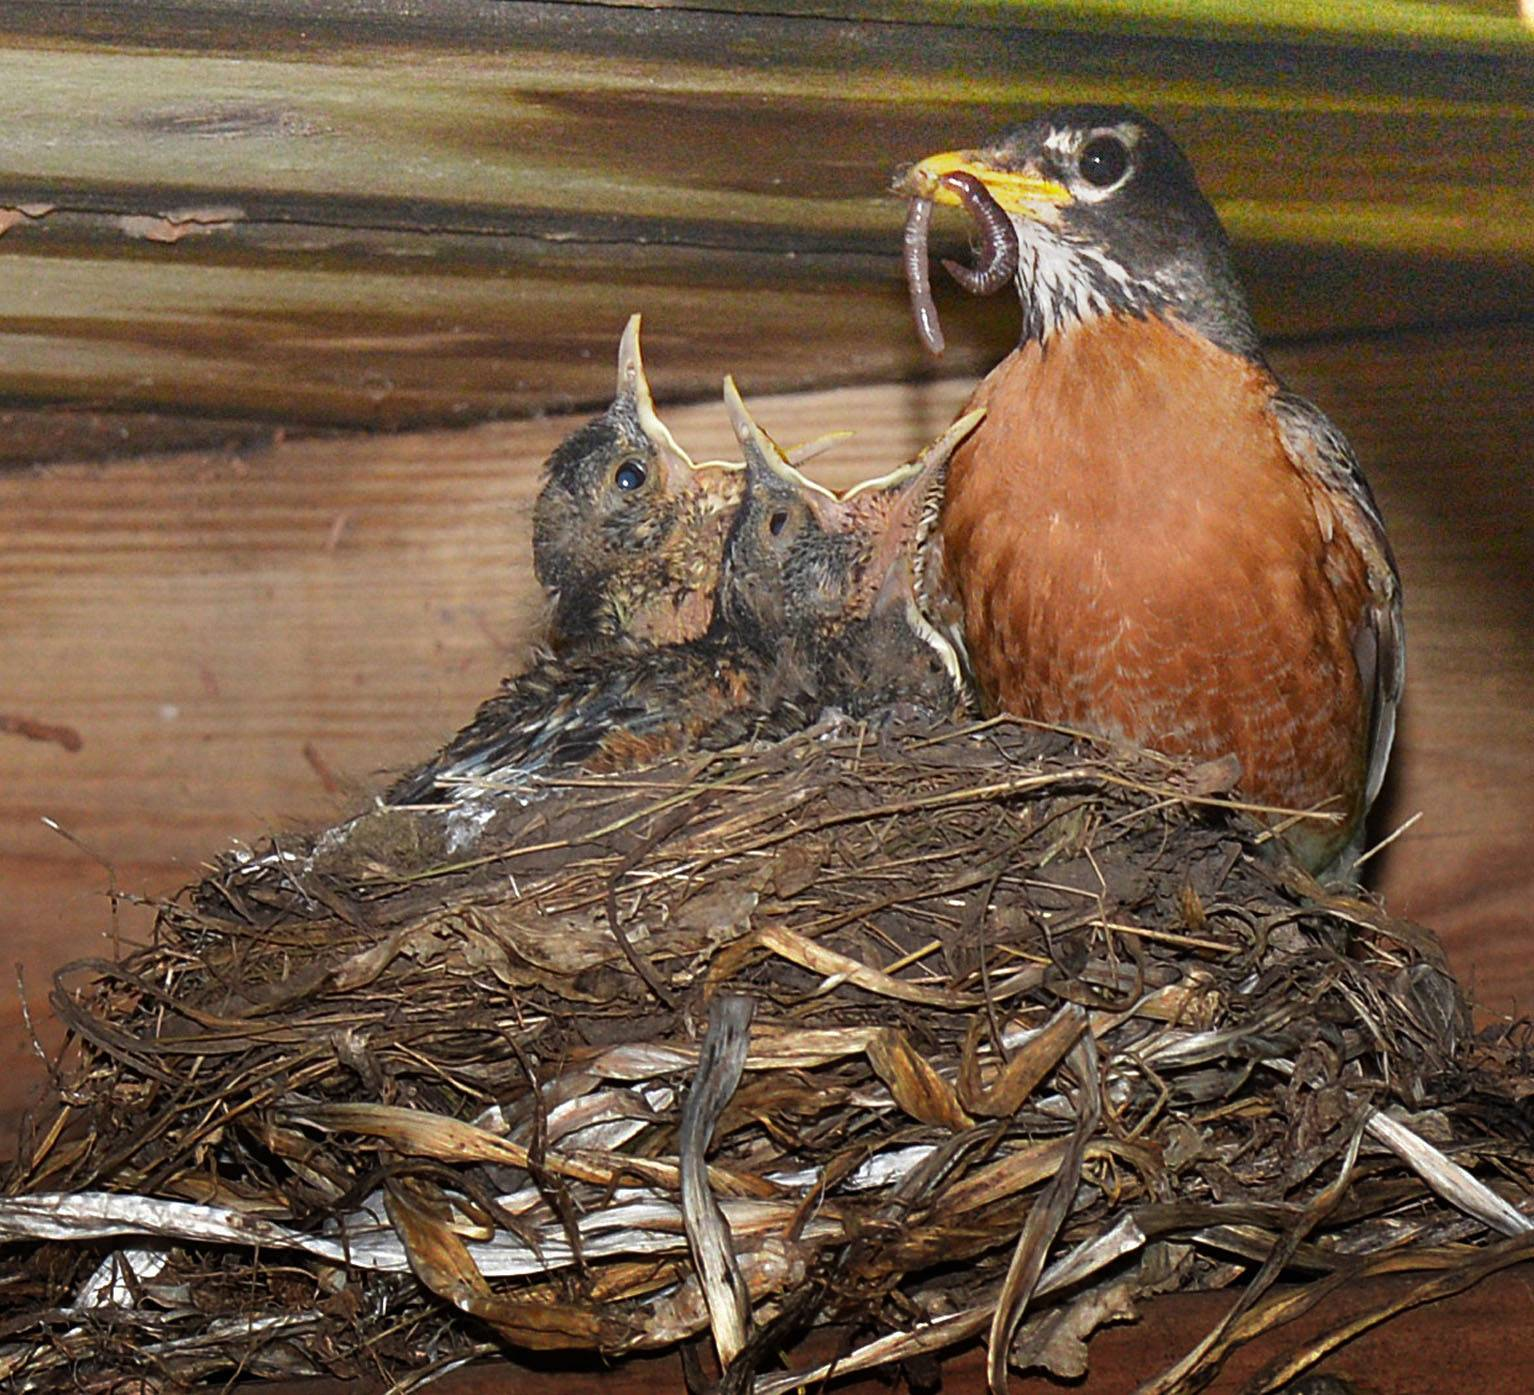 I noticed the robin's nest out of my lower level family room. It was under my deck about 4' above ground. I saw the parents getting worms, and decided to sit very quietly outside about 9' from the nest. Once the parents were used to me they would fly in and feed them worms. I clicked off a few photos and caught 2 of the 3 birds trying to get the worm. A very satisfying experience to see up close the babies and parents tending to the newborns.